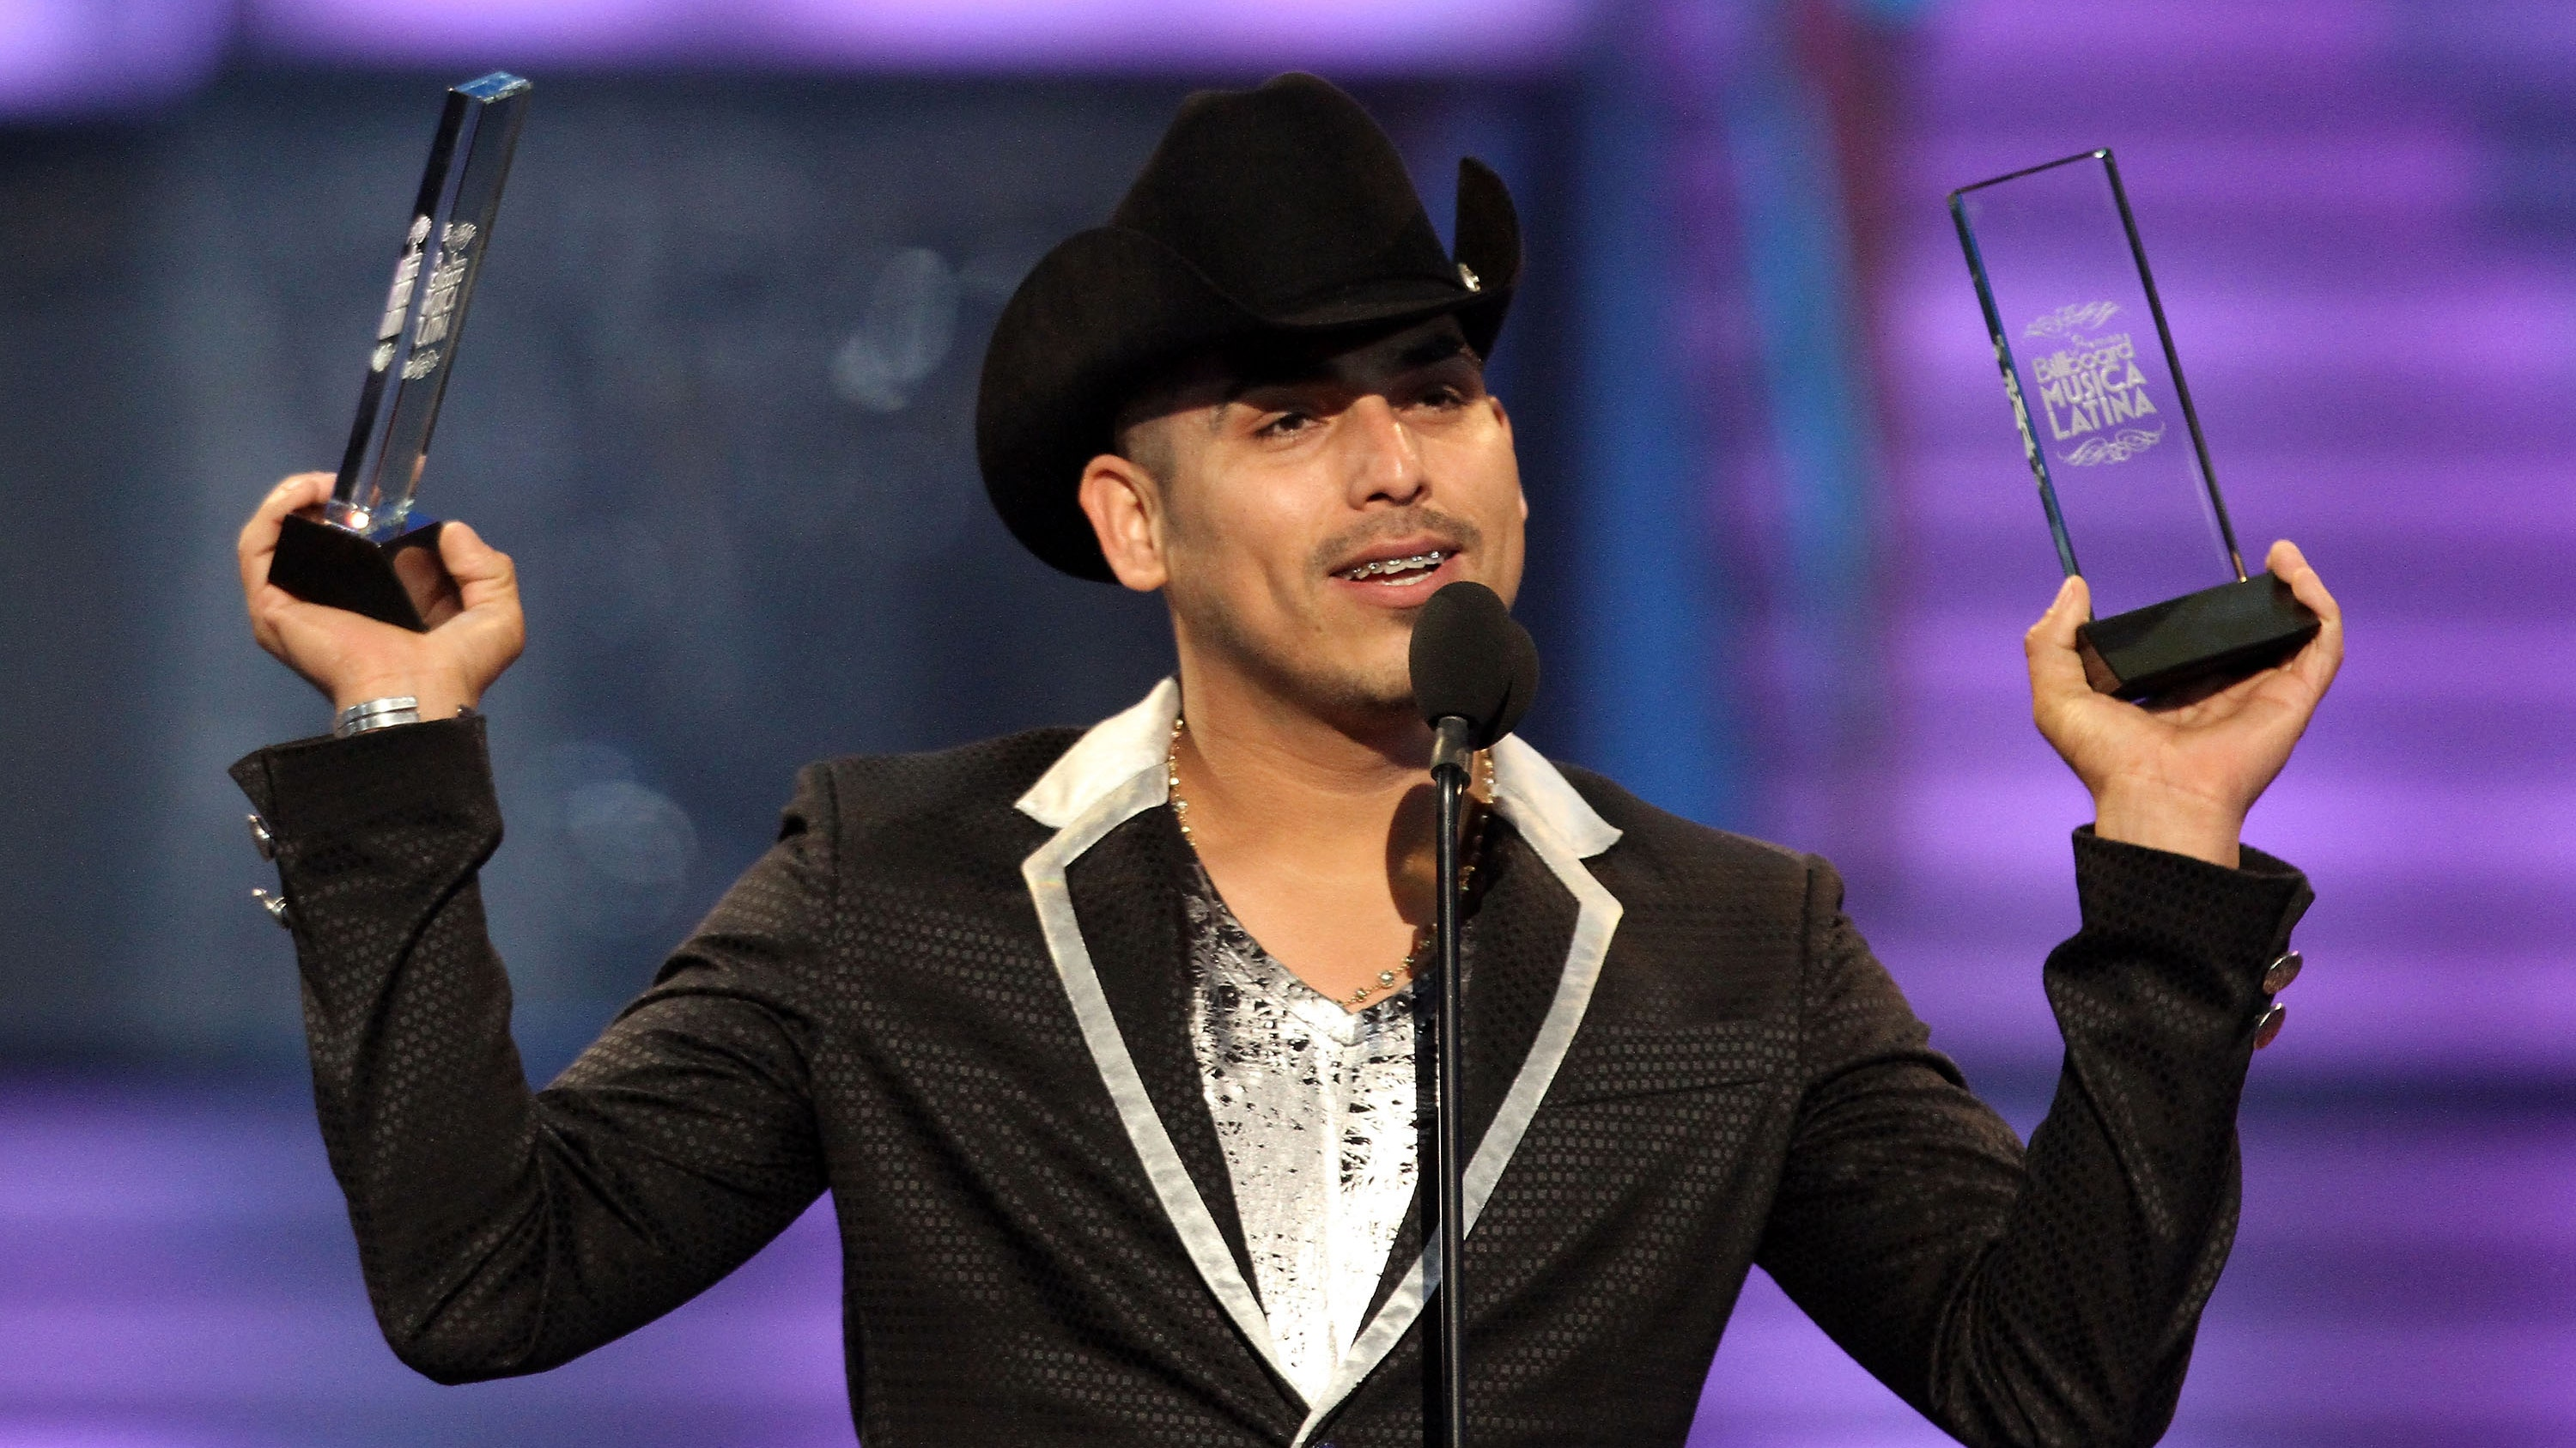 mexican music star espinoza paz why is he retiring fox news latino. Black Bedroom Furniture Sets. Home Design Ideas